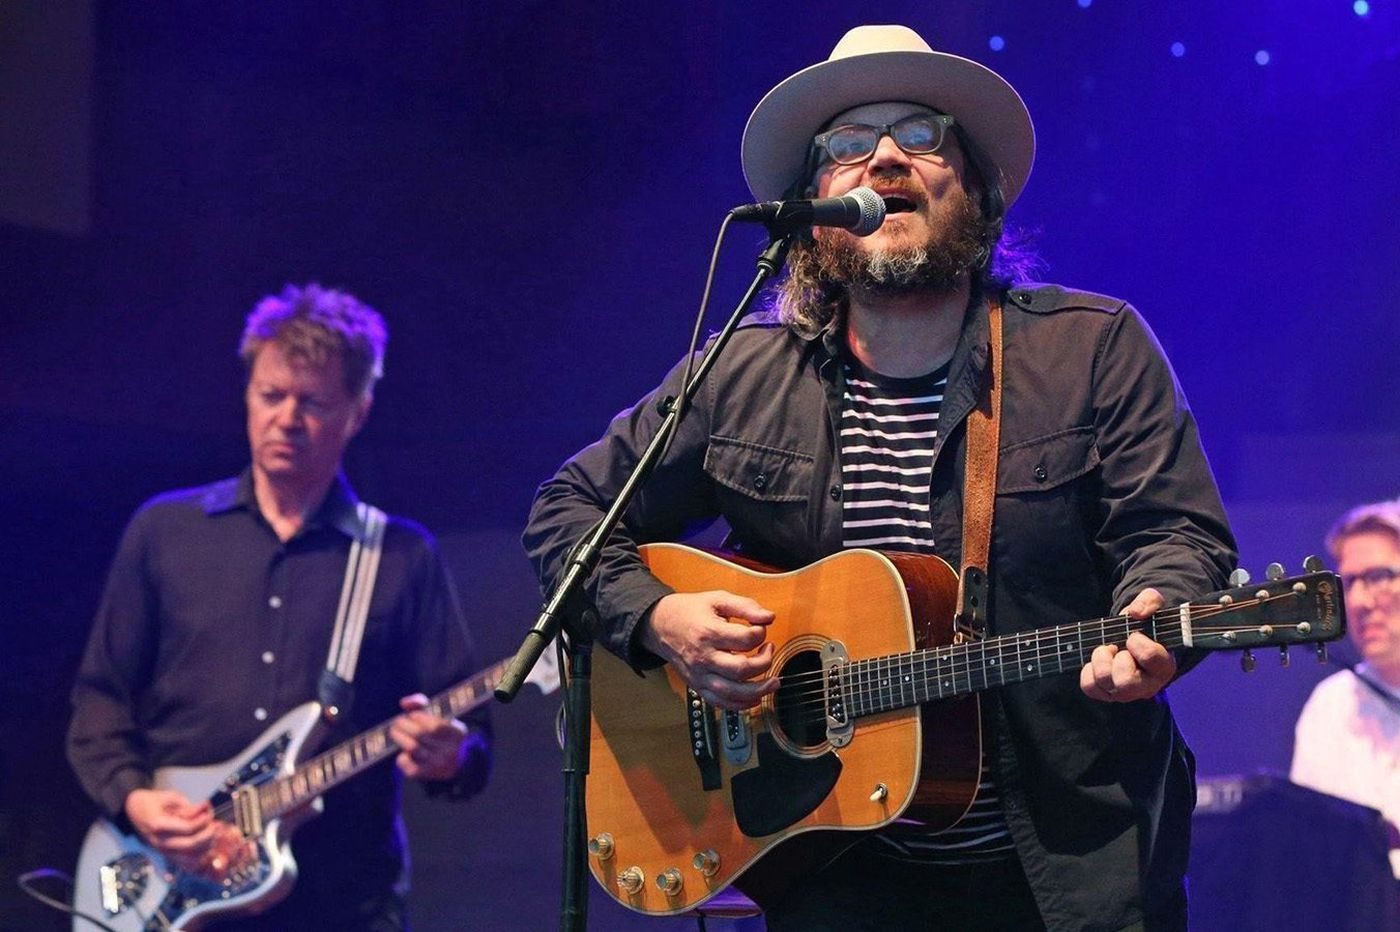 Album reviews: Vince Gill, Wilco, and the Pernice Brothers